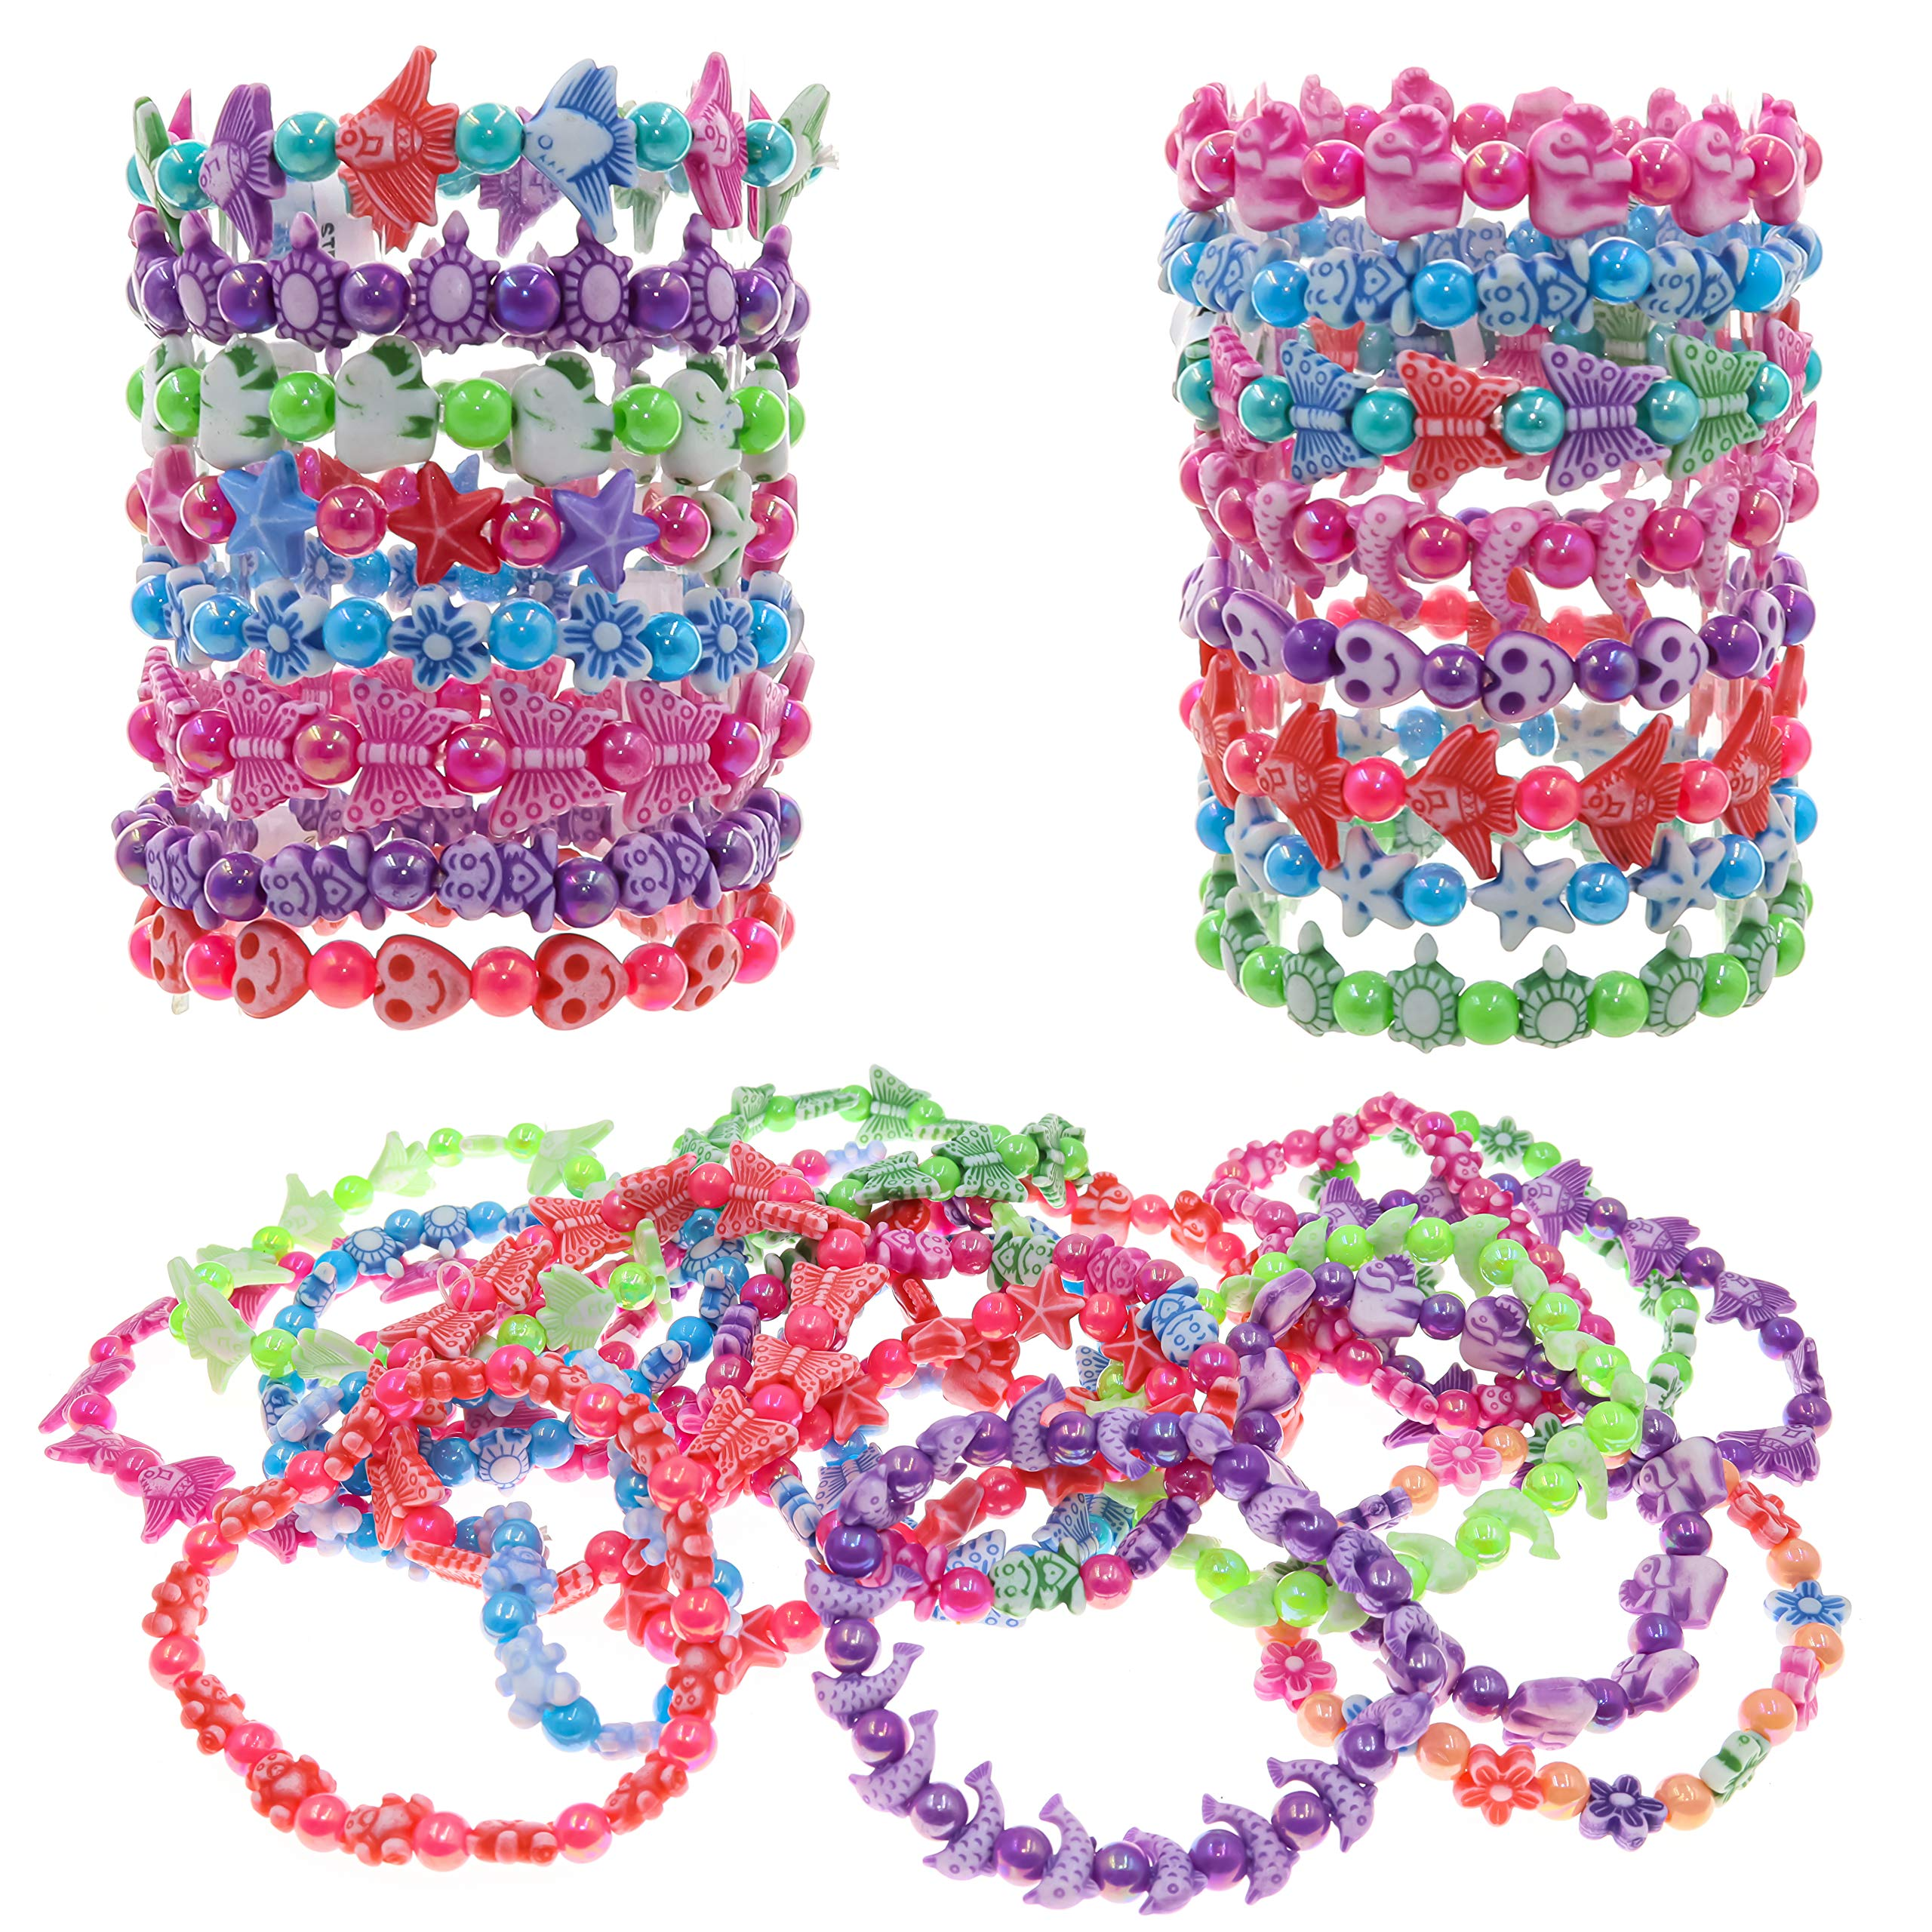 FROG SAC 36 Cute Bracelets for Little Girls - Multicolored Beads Bracelet Set - Stretchy Cute Animal Beaded Party Favor Bracelets - Great Stocking Stuffers for Kids by FROG SAC